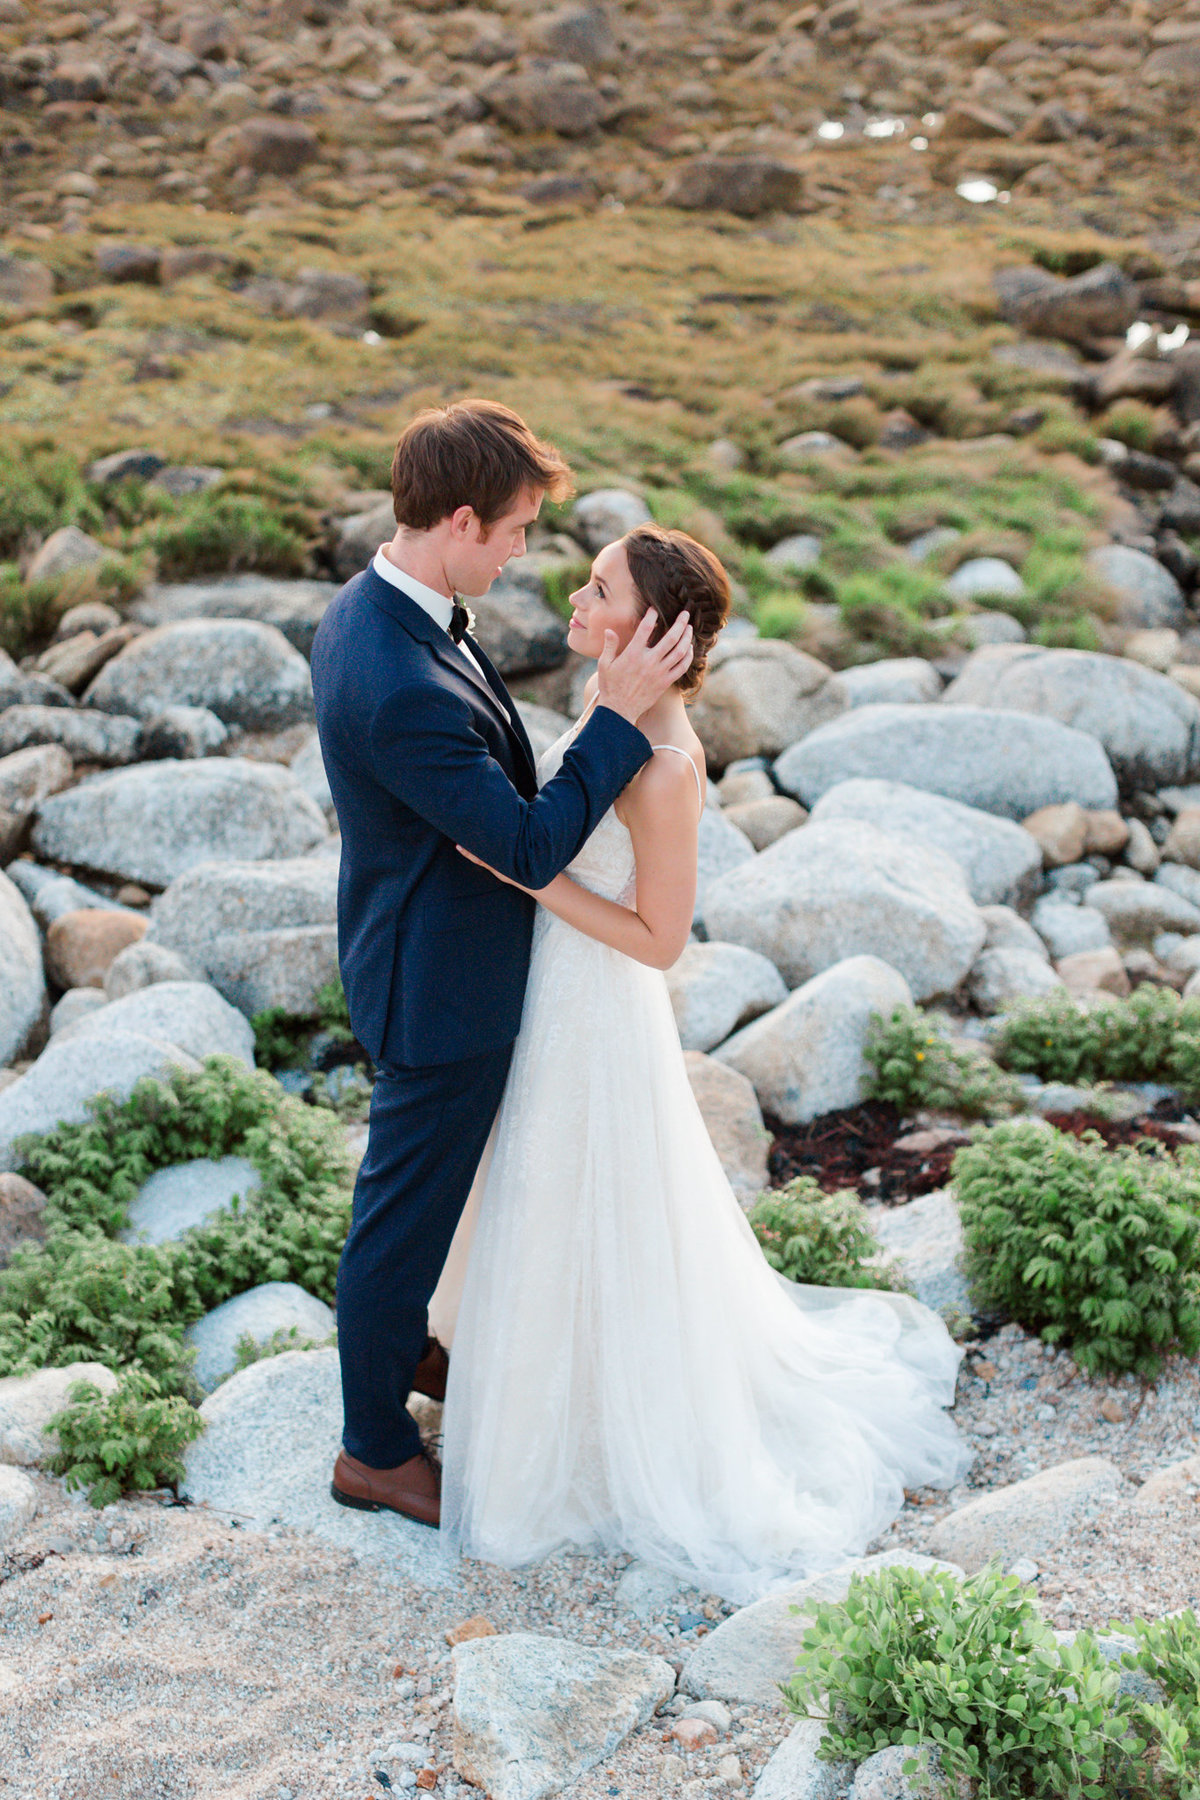 Terri-Lynn Warren Photography - Halifax Wedding Photographer - Oceanstone Seaside Resort-8602